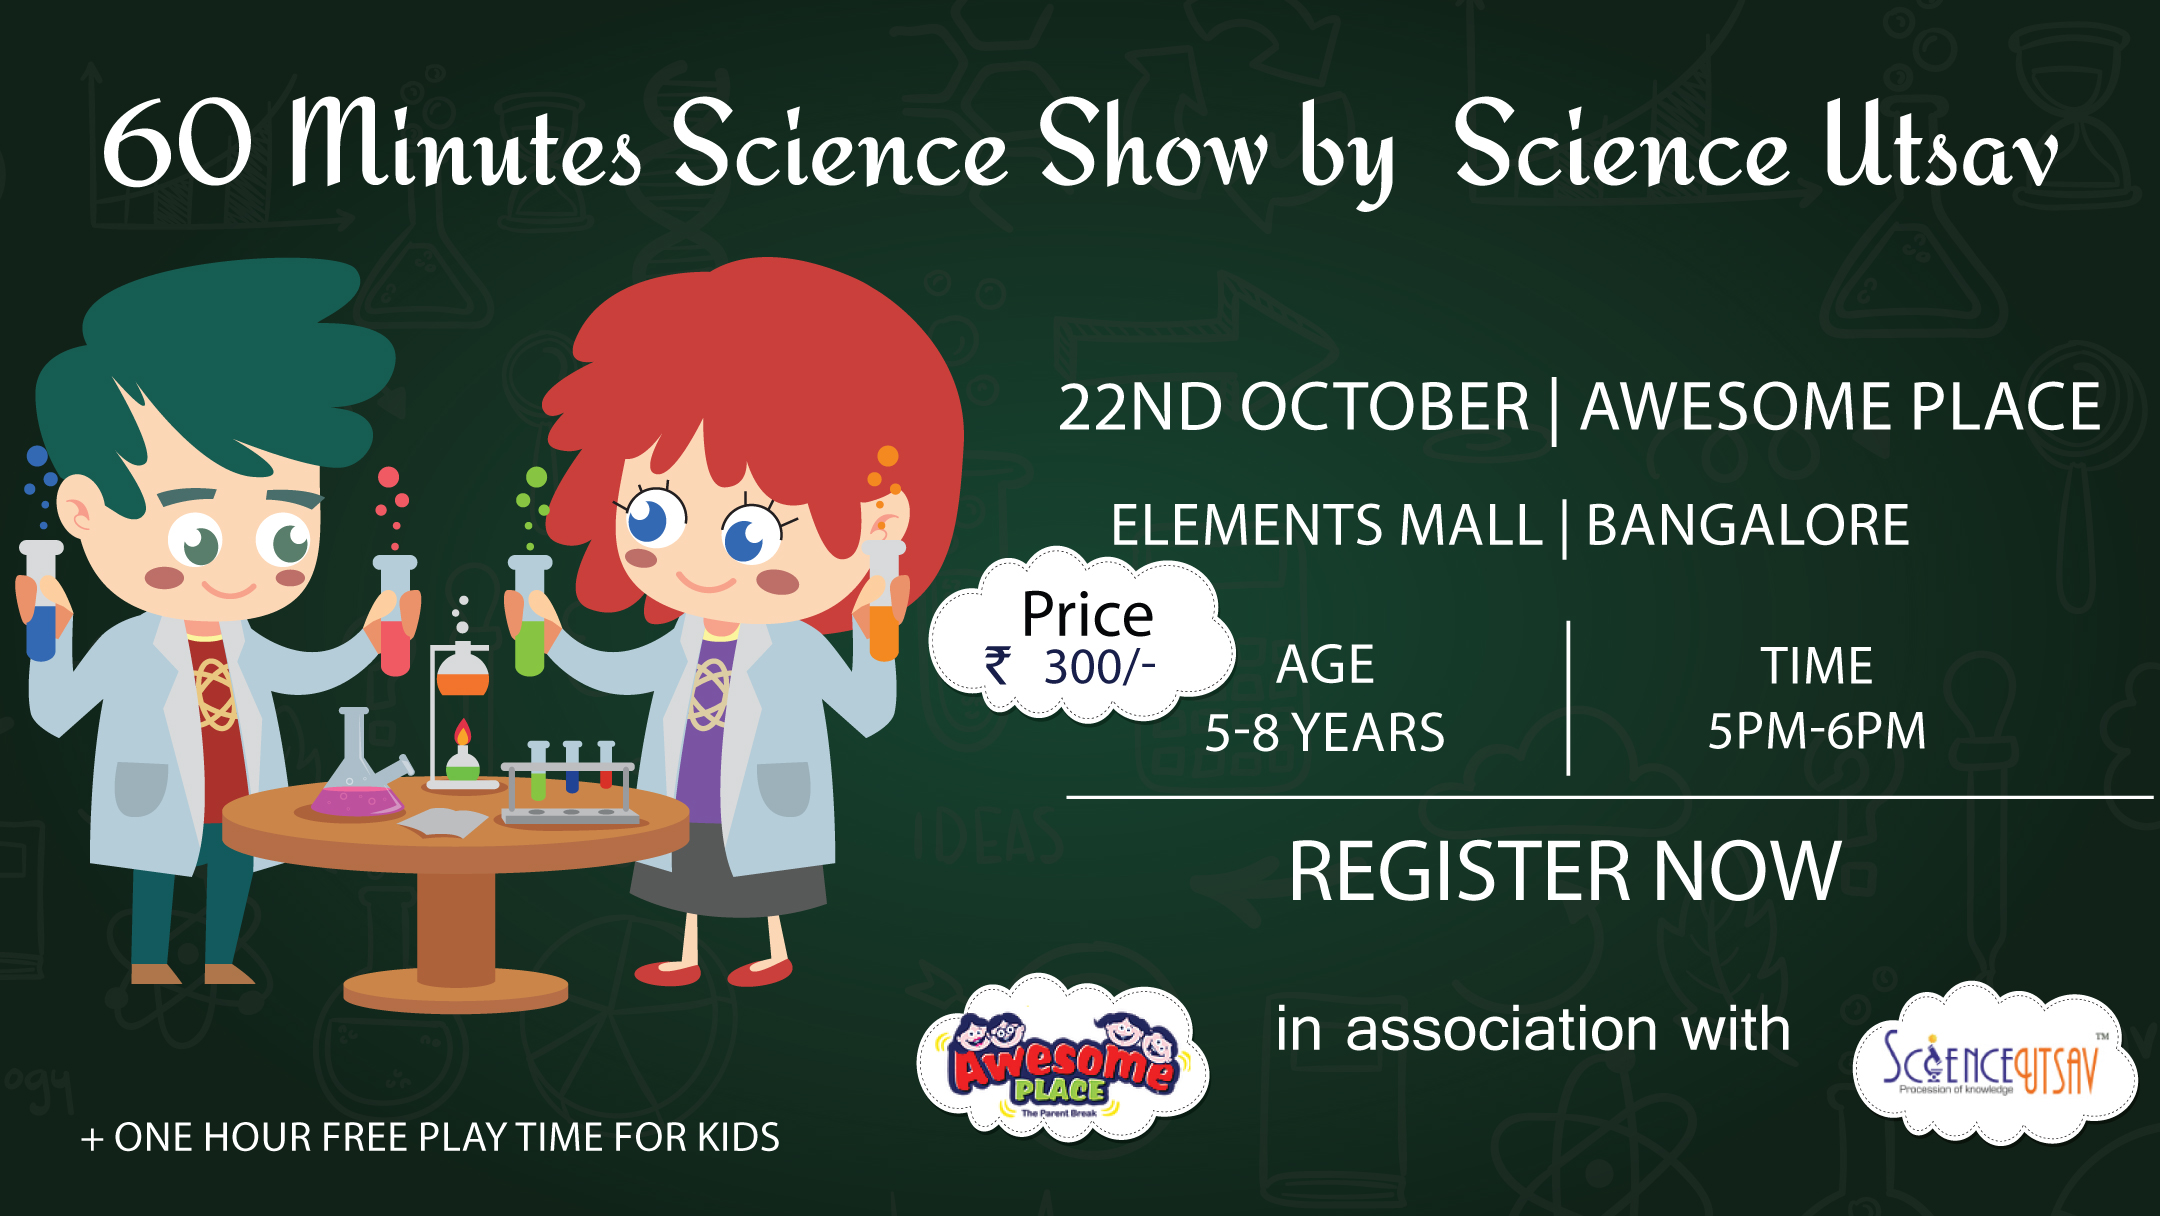 60 mins Science Show by Science Utsav - Elements Mall, Bangalore